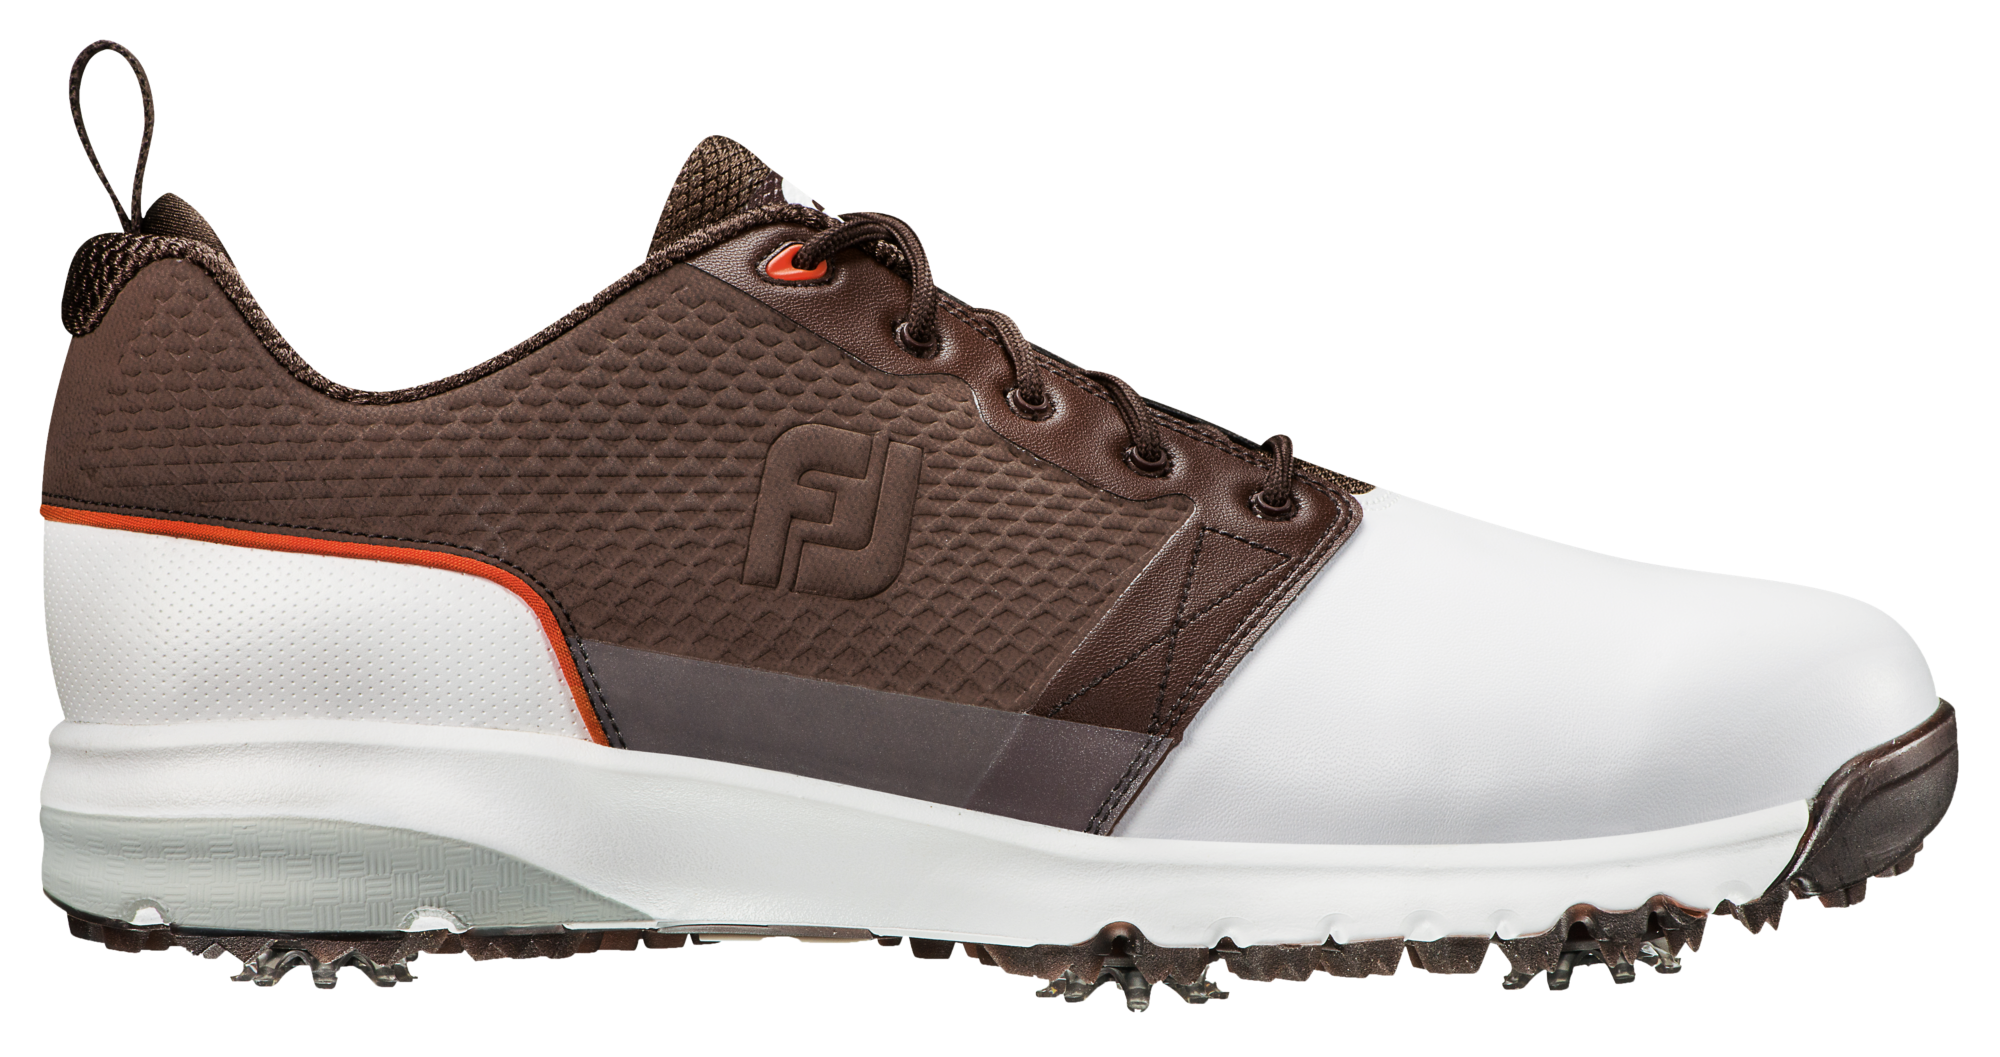 2017 FootJoy Golf Shoe